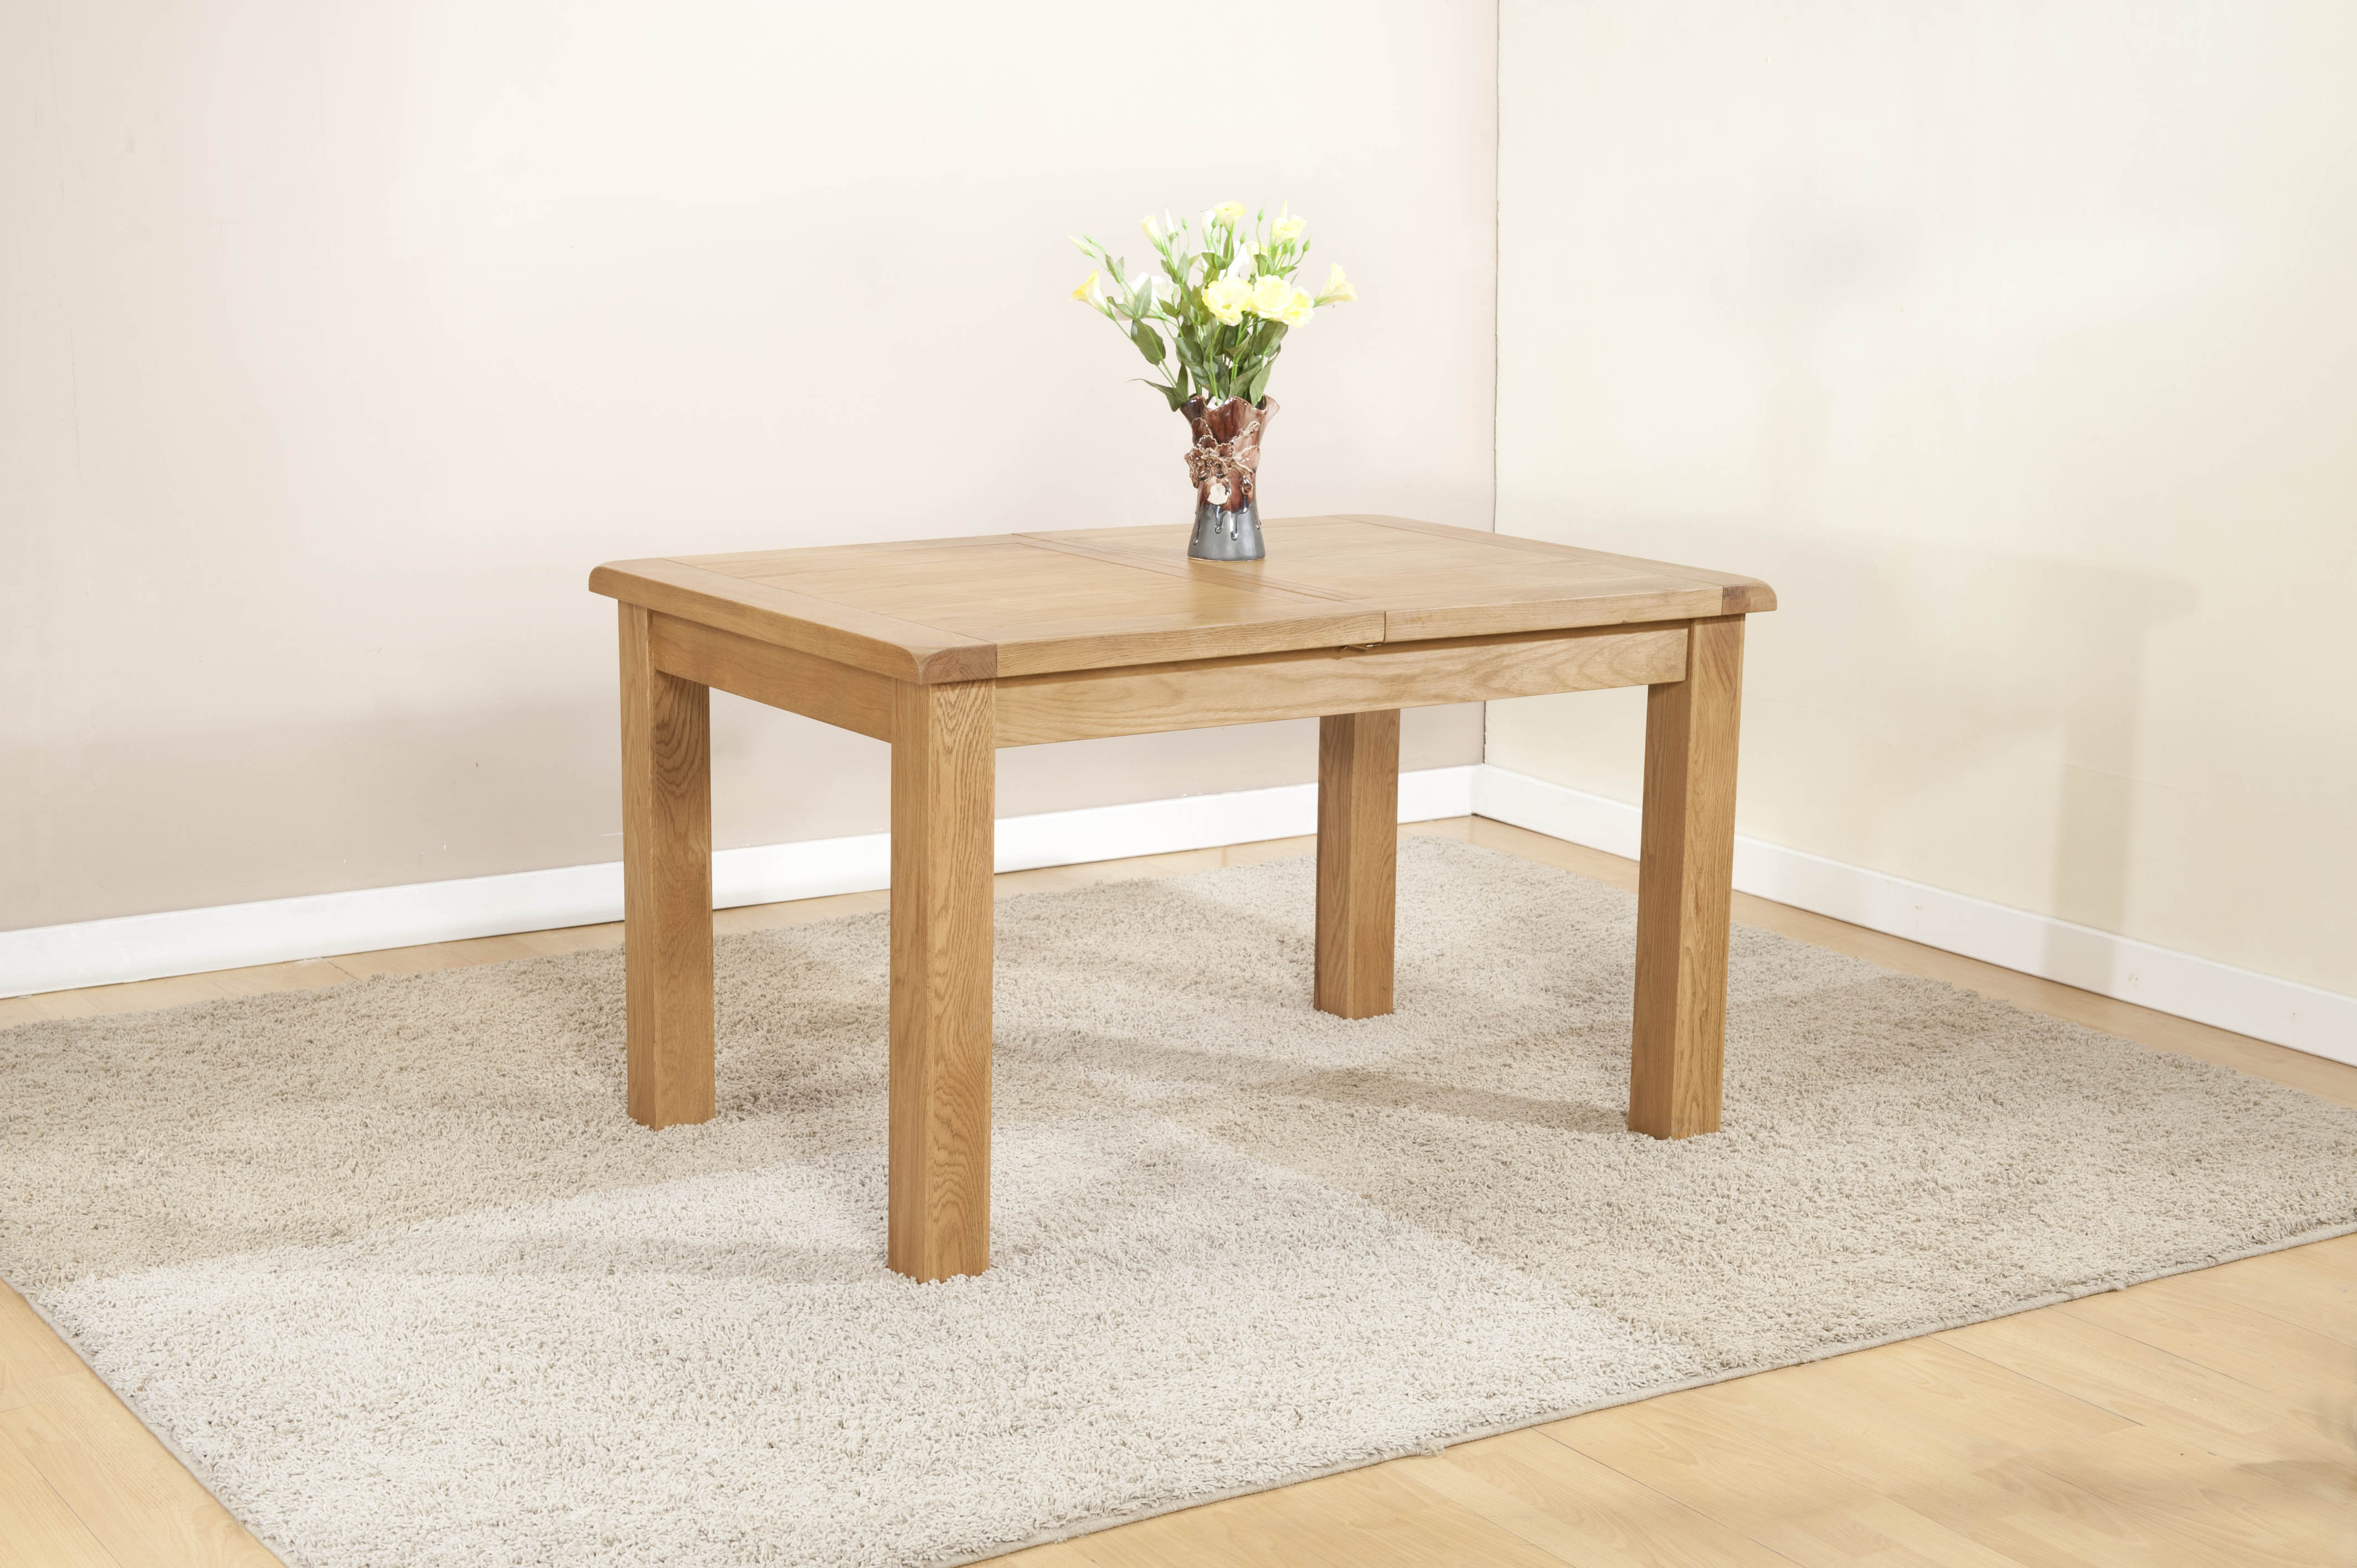 Shrewsbury Oak Extending Dining Table 1320-1980mm - Table only